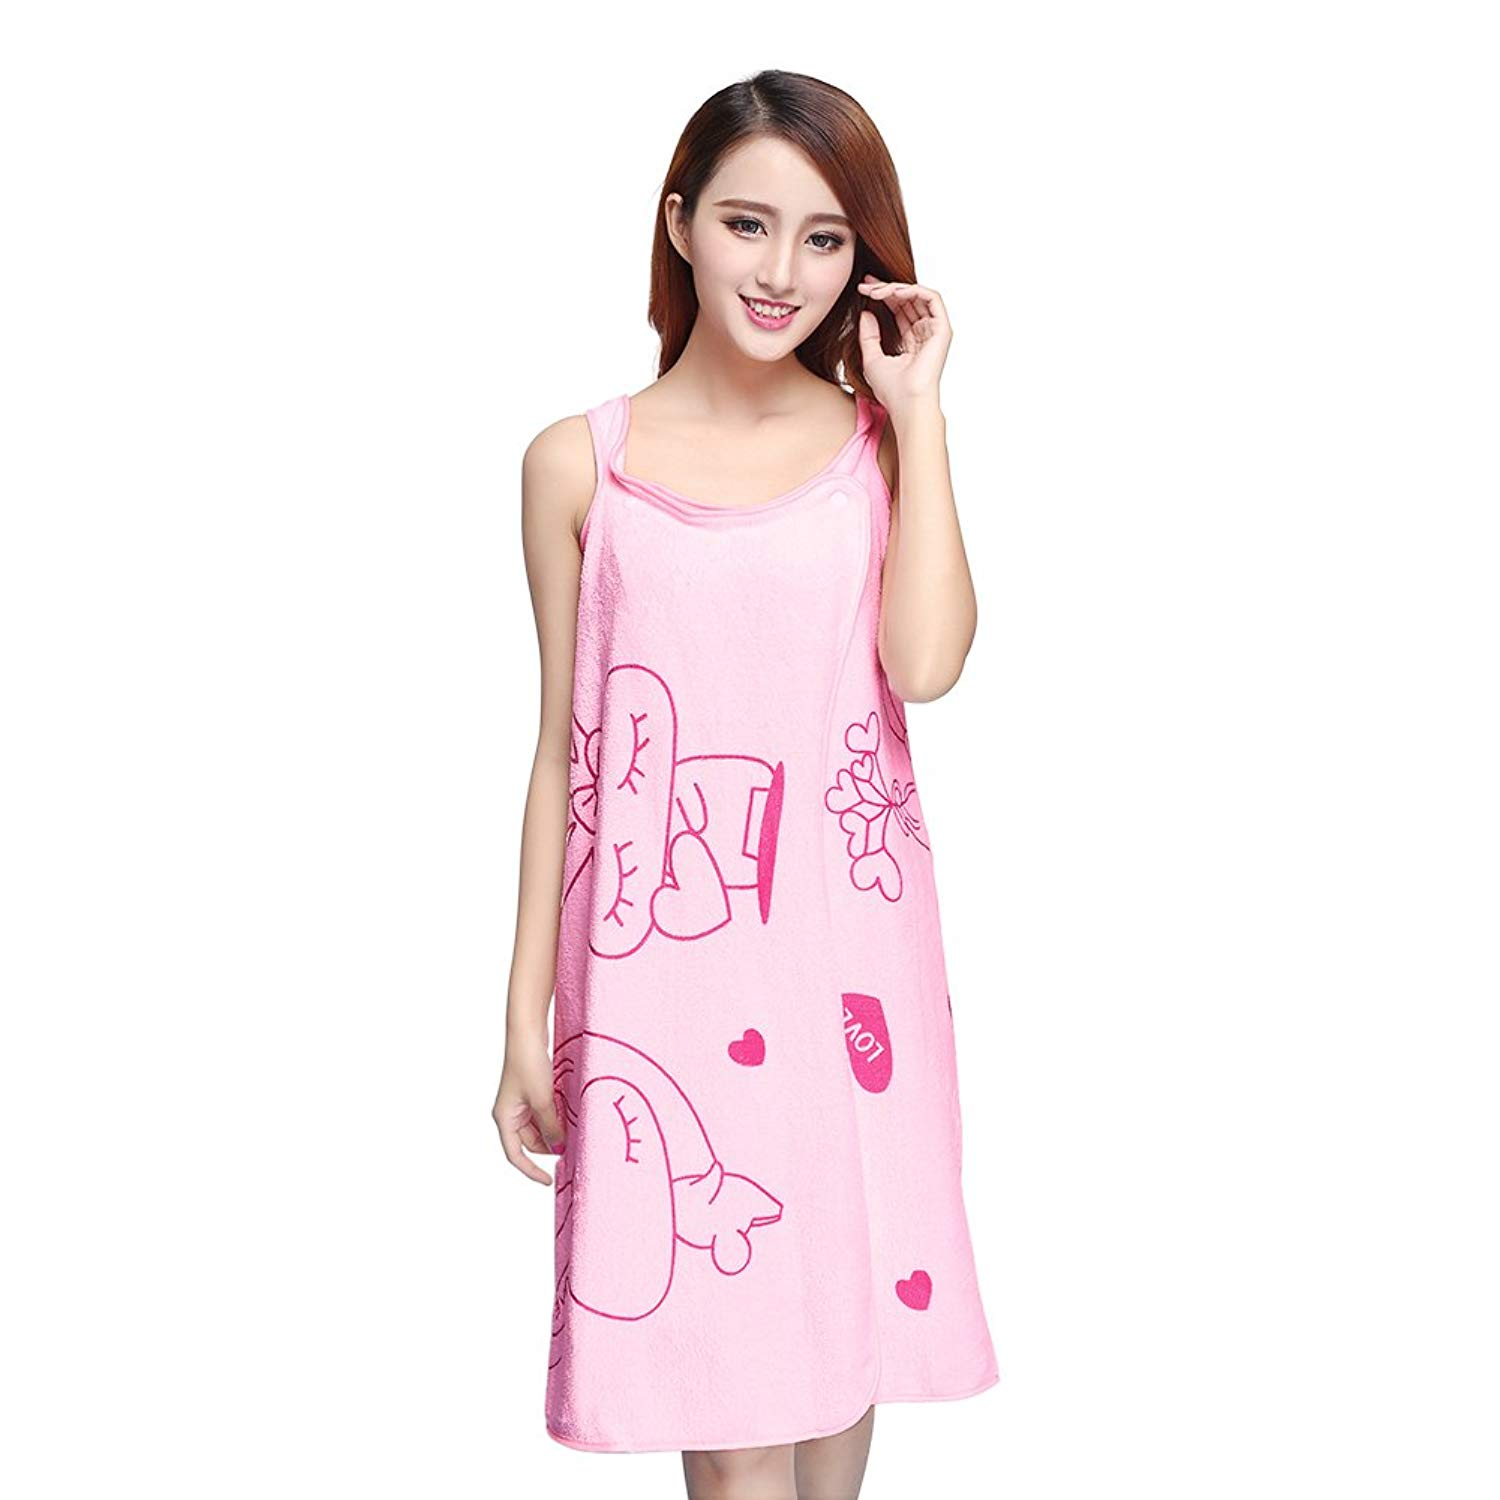 Luxsea Ladies Lovely Magic Sleeves Nightgowns Unisex Transformable Bath  Robes Towels Cartoon Printed Bath Towels aec61de52